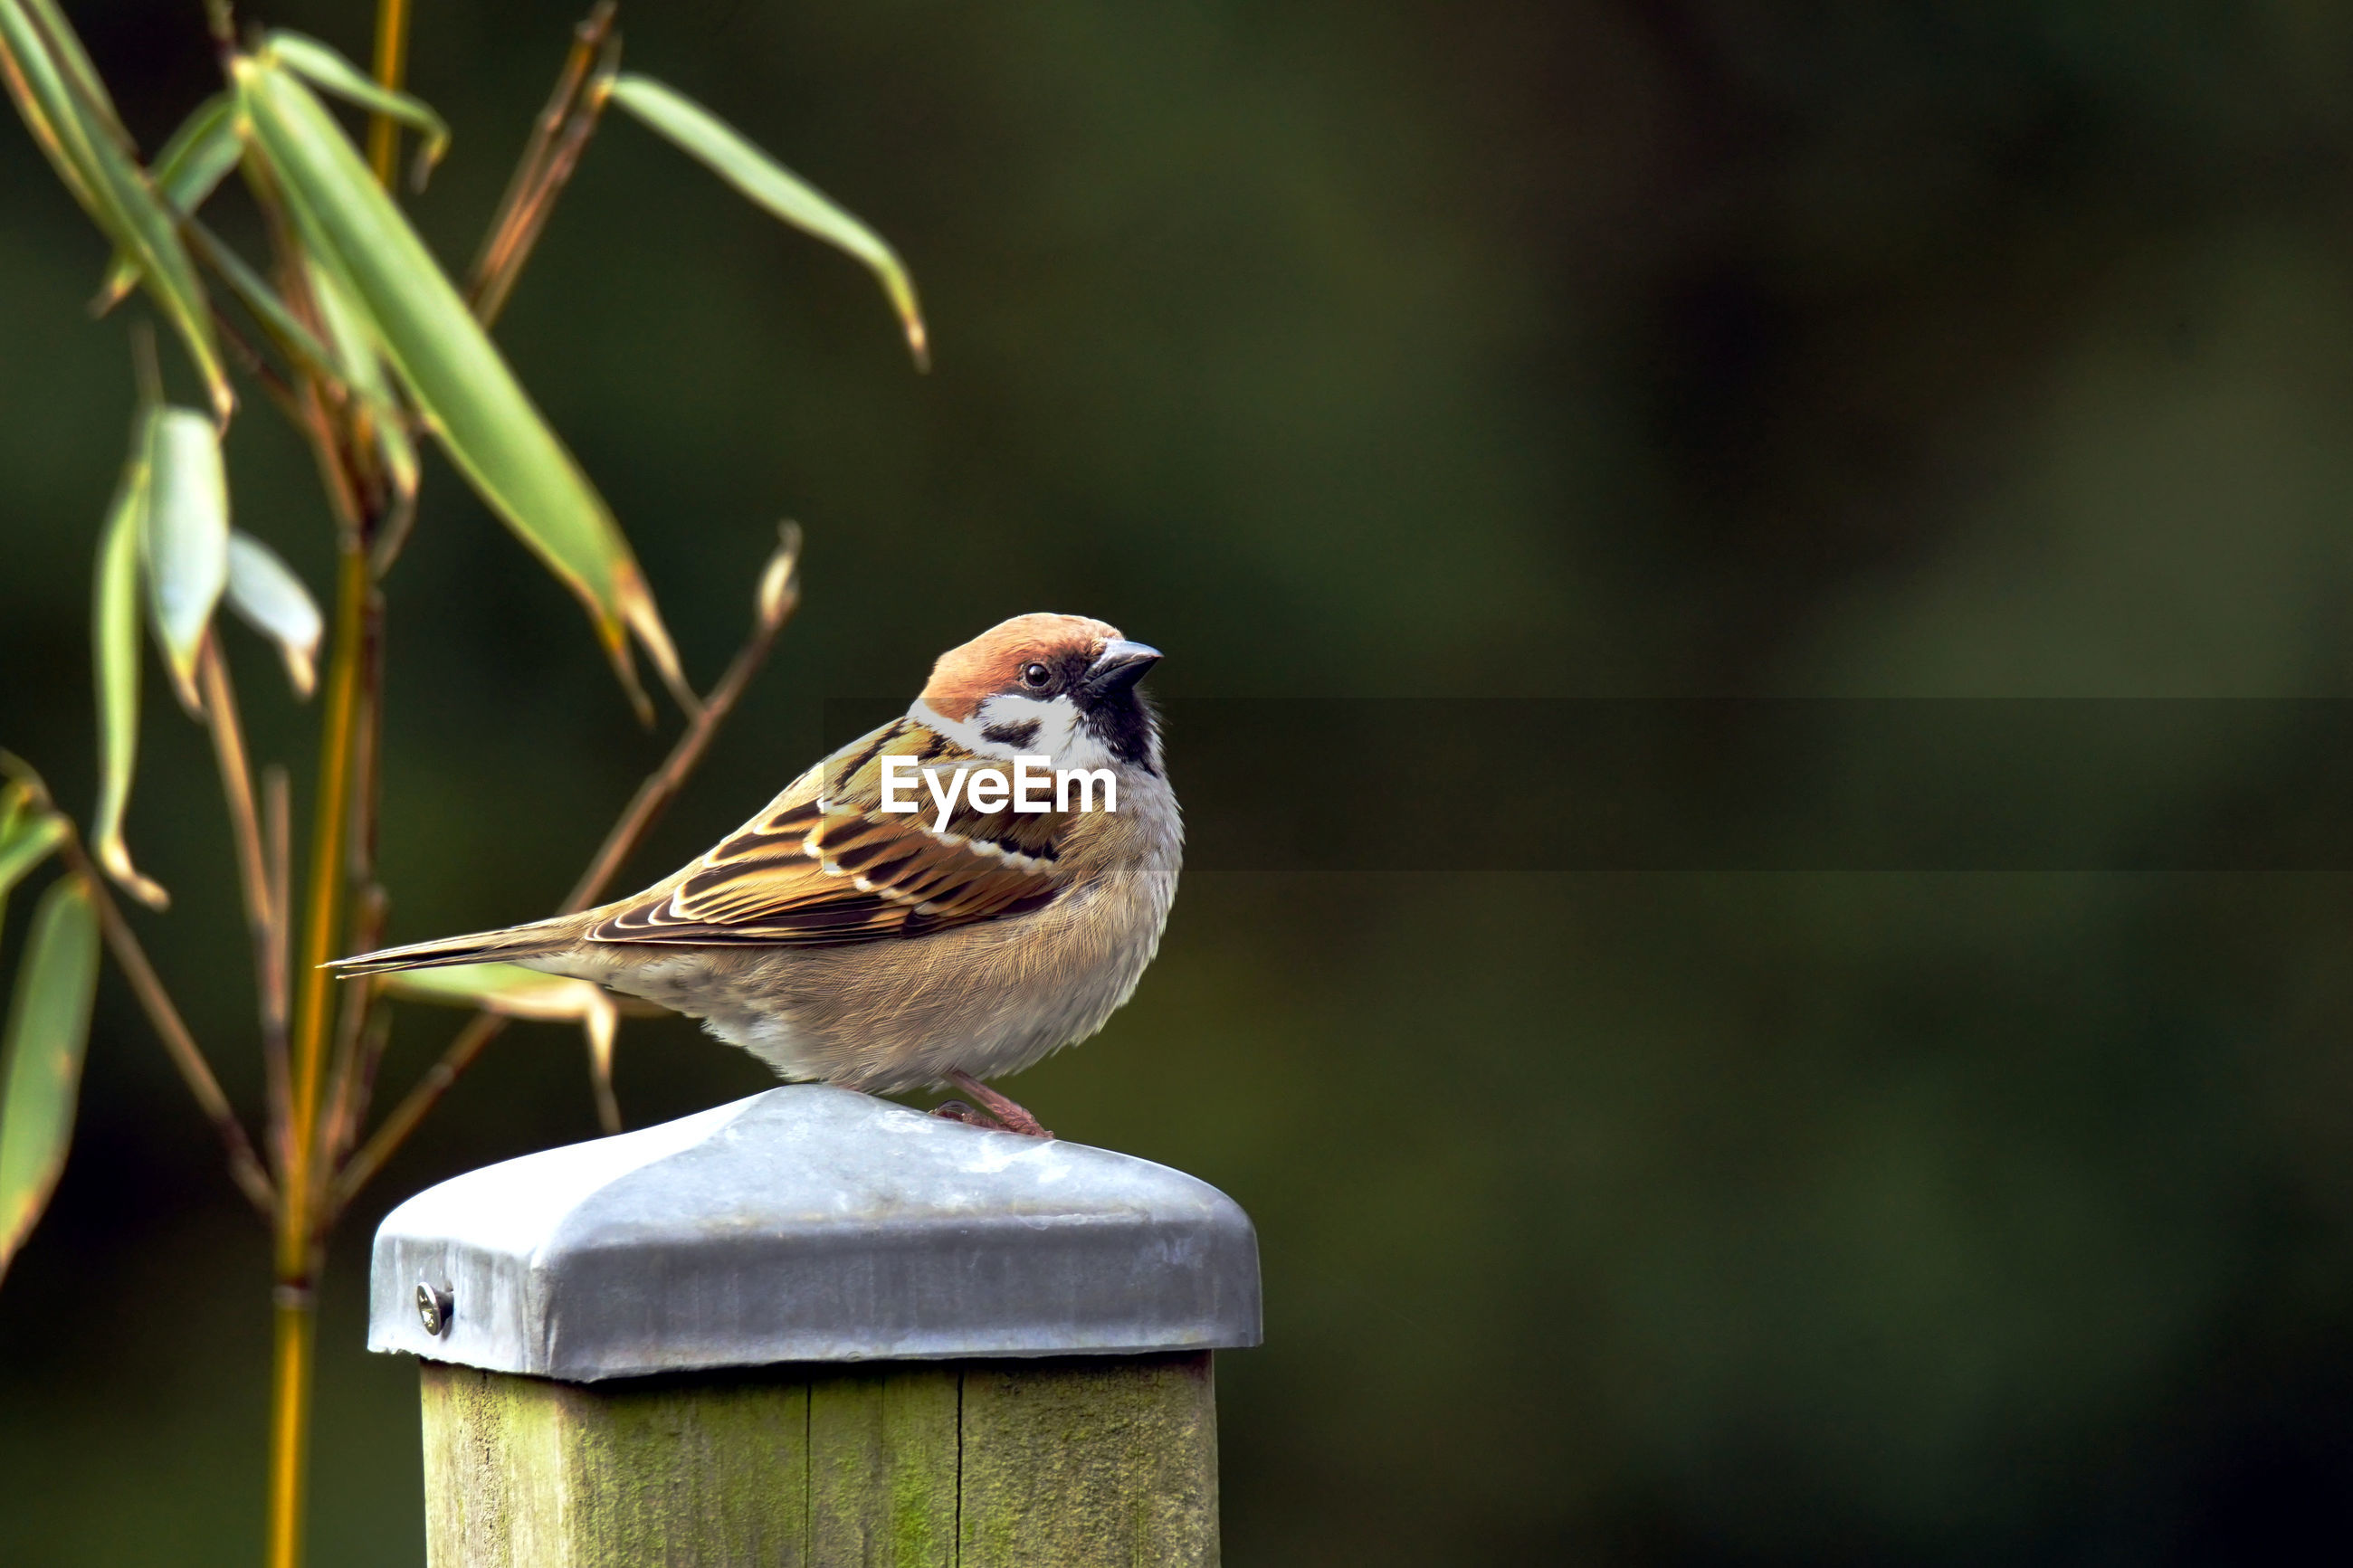 CLOSE-UP OF A BIRD PERCHING ON WOODEN POST